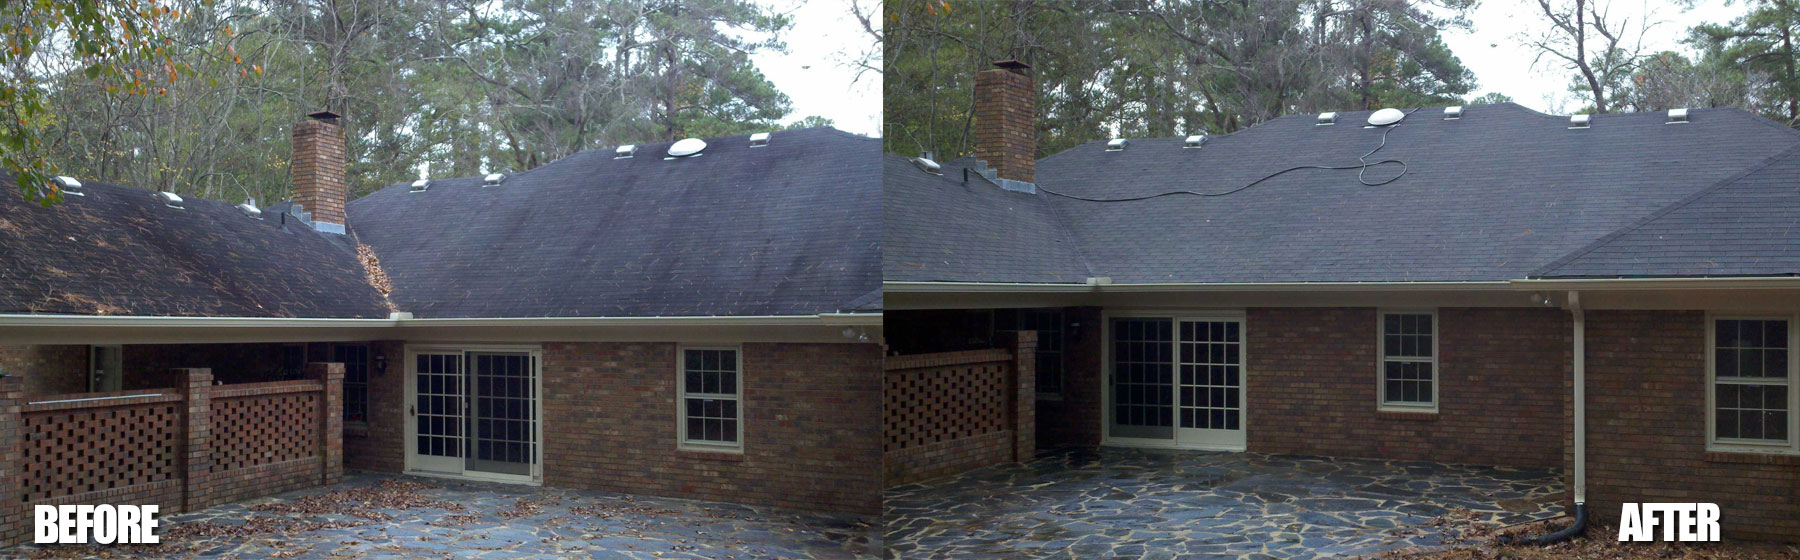 roof-cleaning-augusta-ga